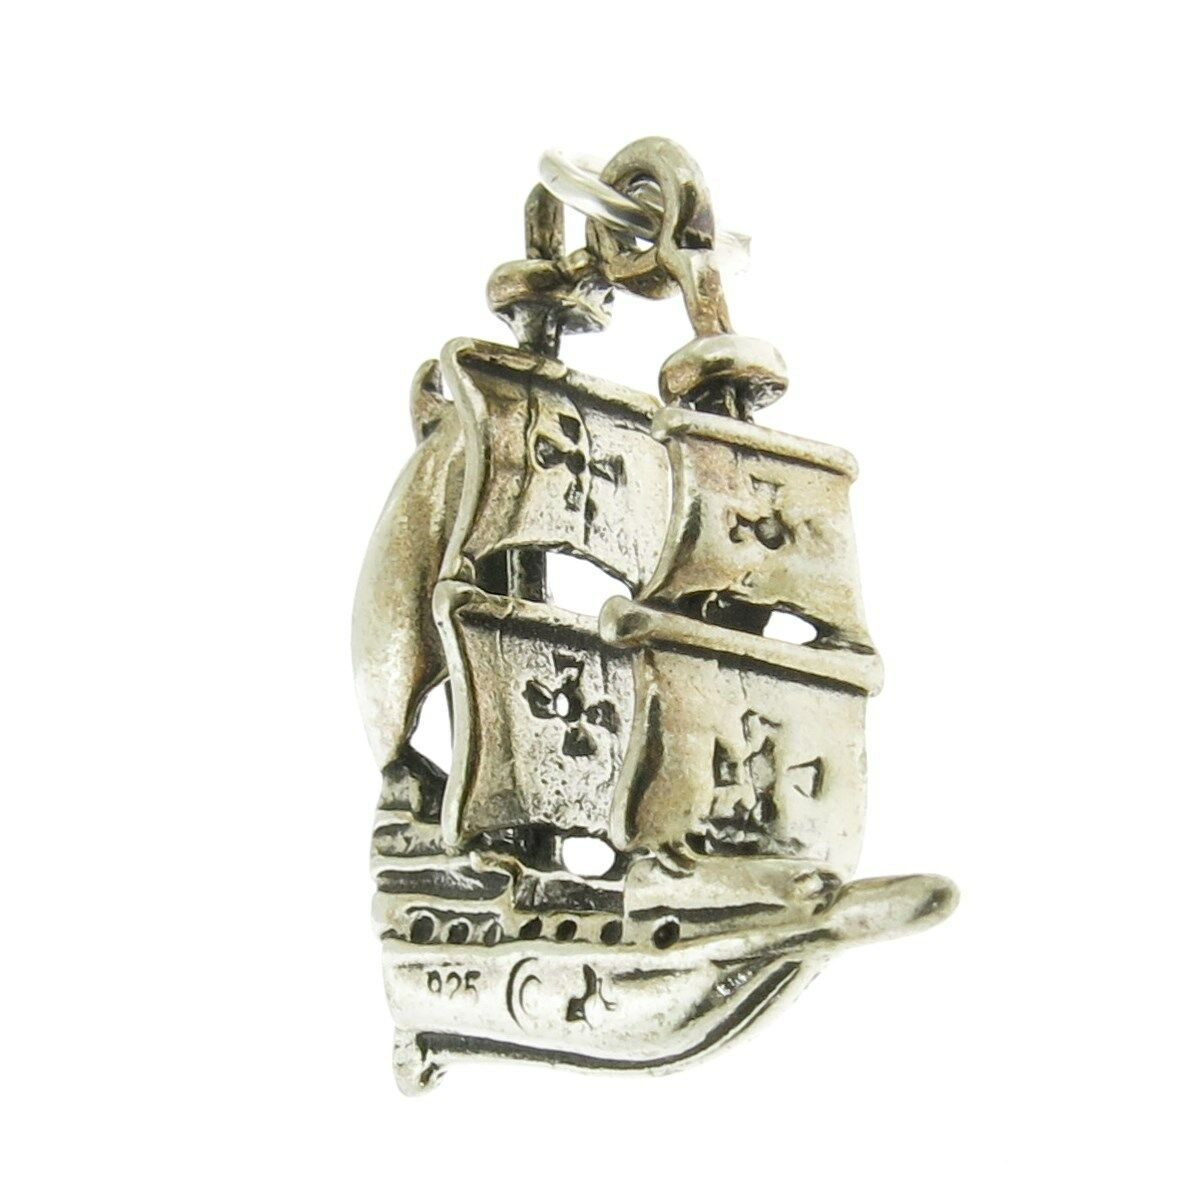 925 Sterling Silver Pirate Ship Charm Made in USA Fine Charms & Charm Bracelets